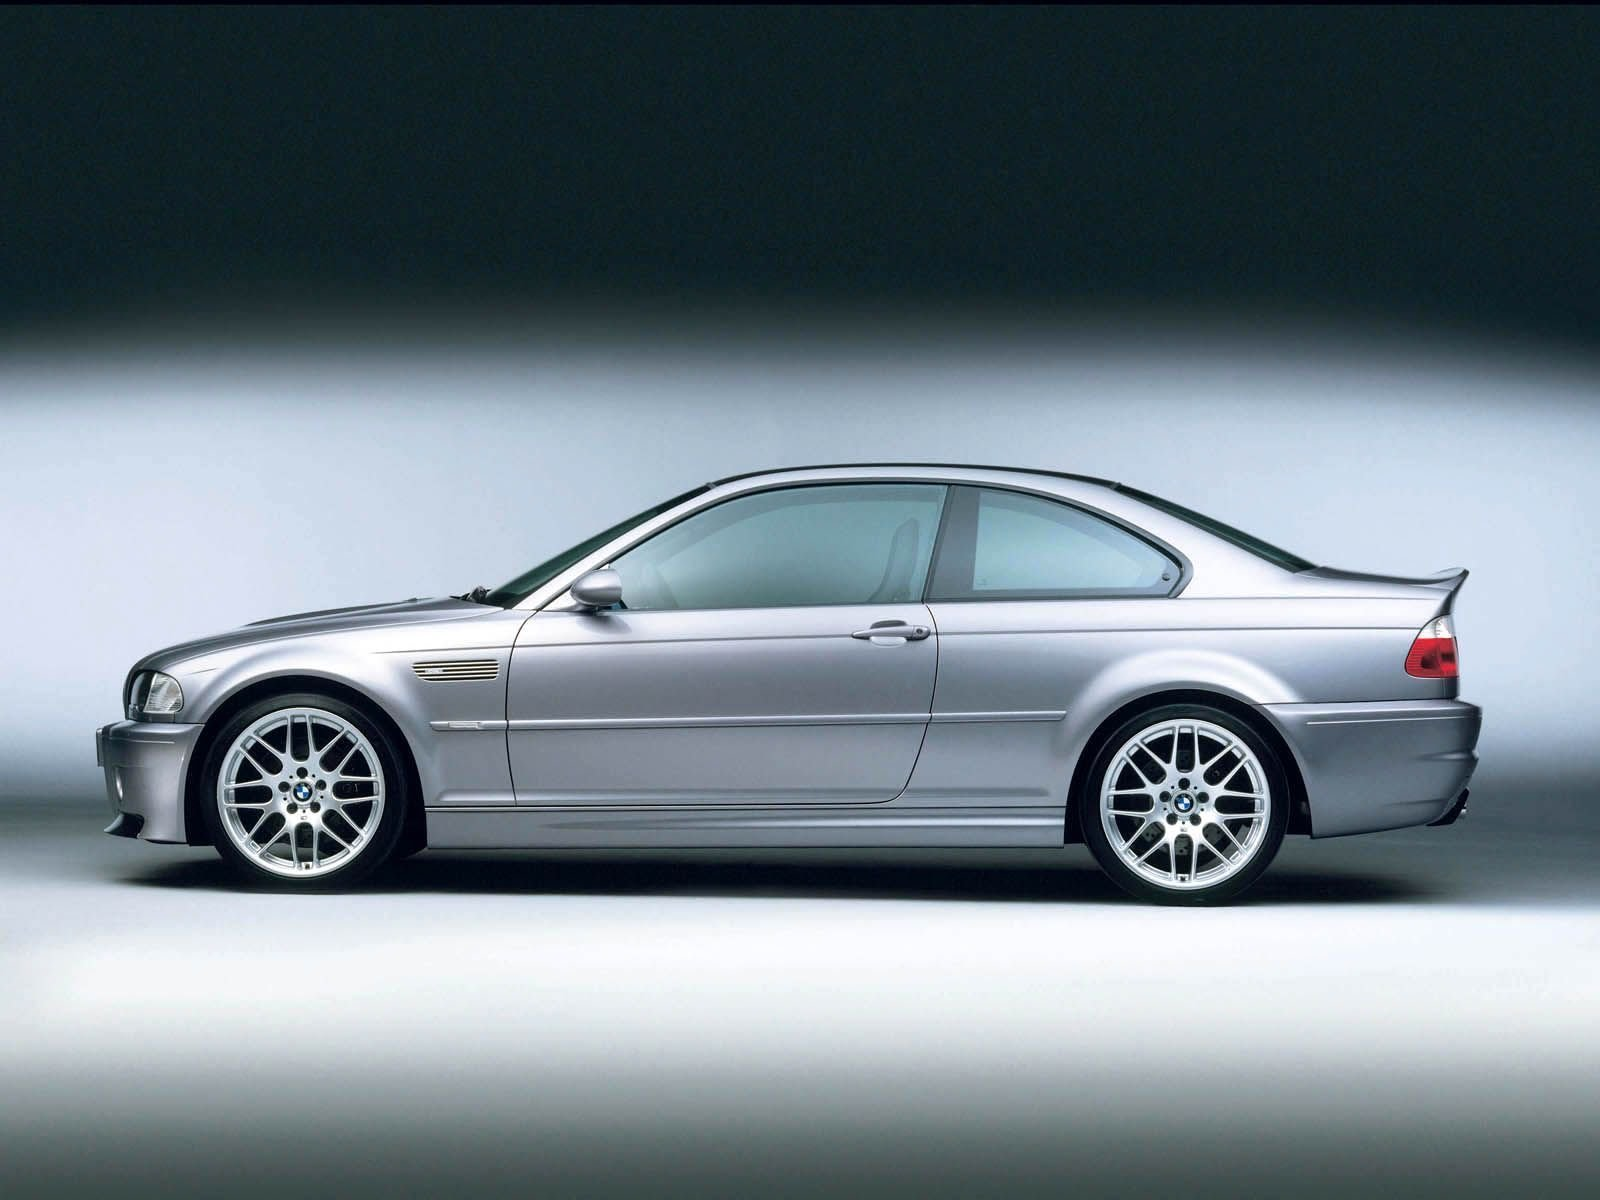 2005 bmw m3 e46 csl picture 30978 car review top speed. Black Bedroom Furniture Sets. Home Design Ideas